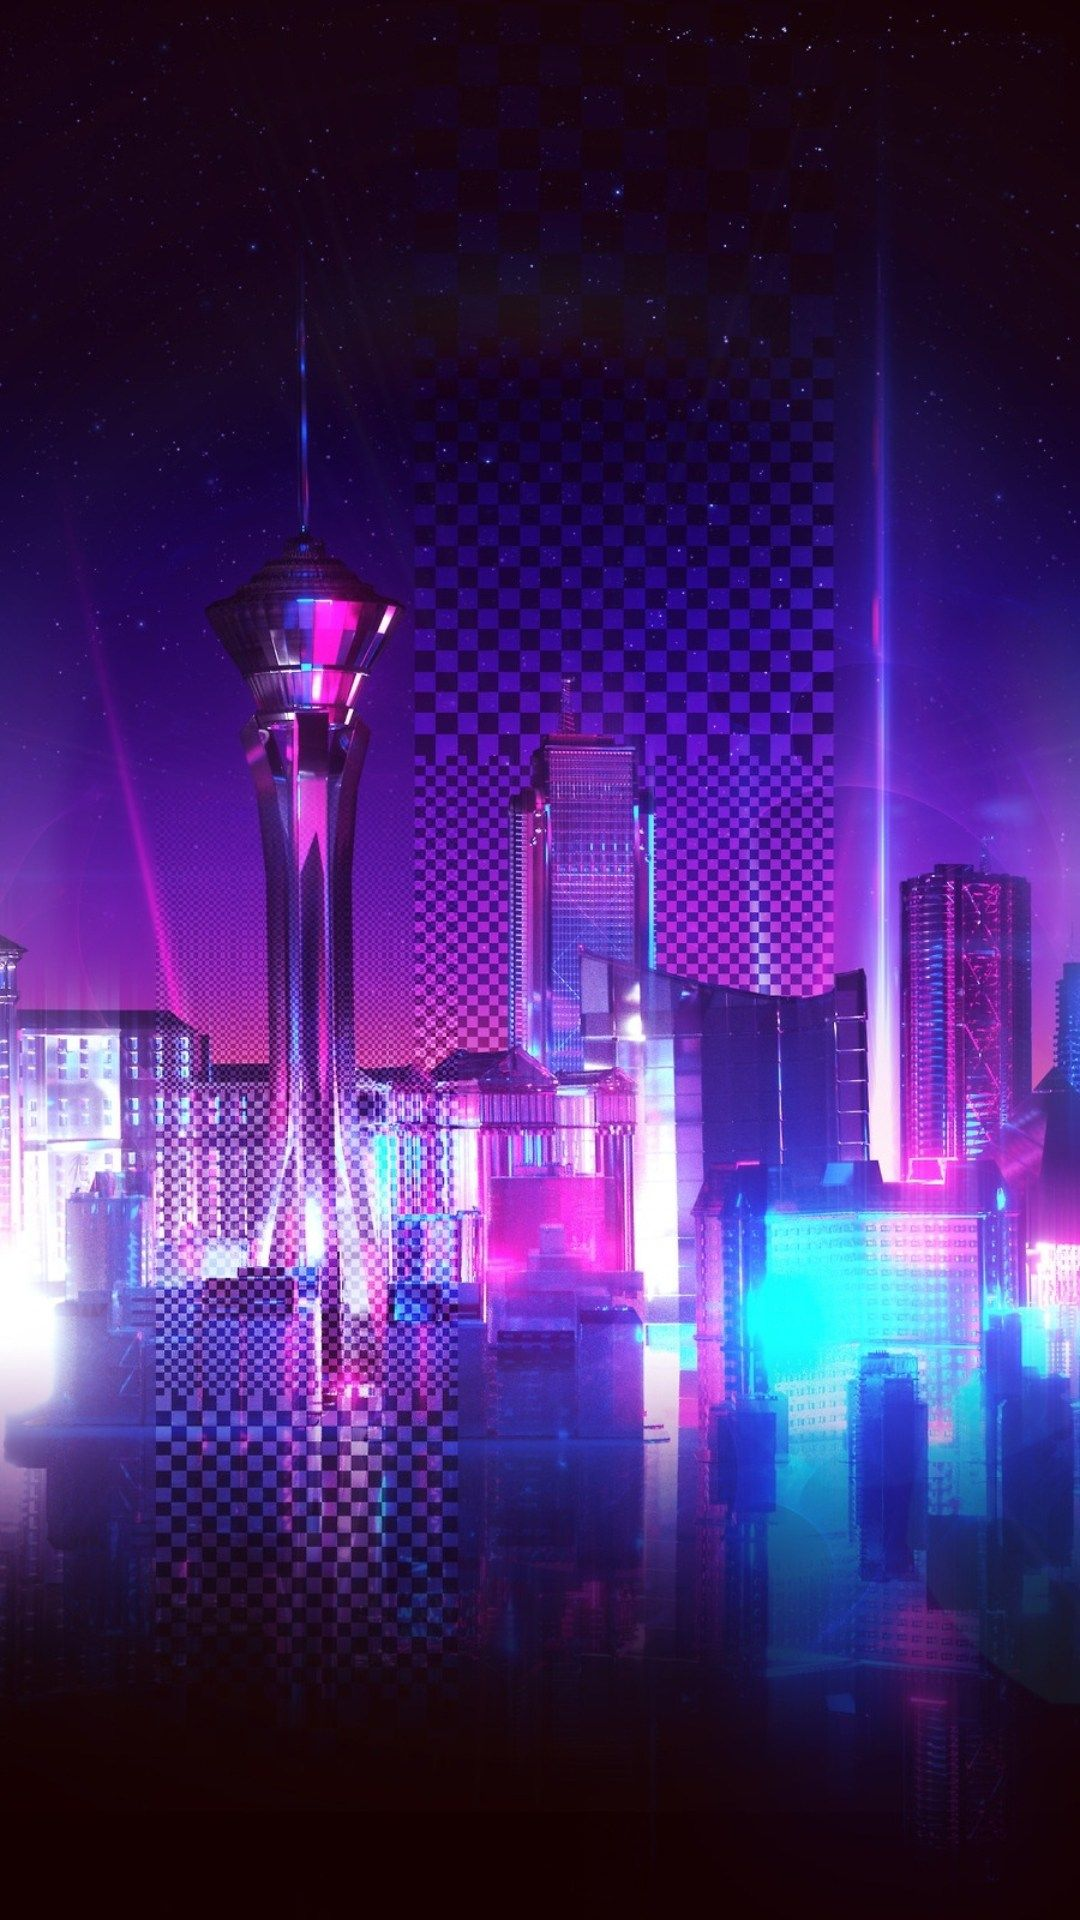 Neon Purple Wallpapers Top Free Neon Purple Backgrounds Wallpaperaccess Support us by sharing the content, upvoting wallpapers on the page or sending your own background pictures. neon purple wallpapers top free neon